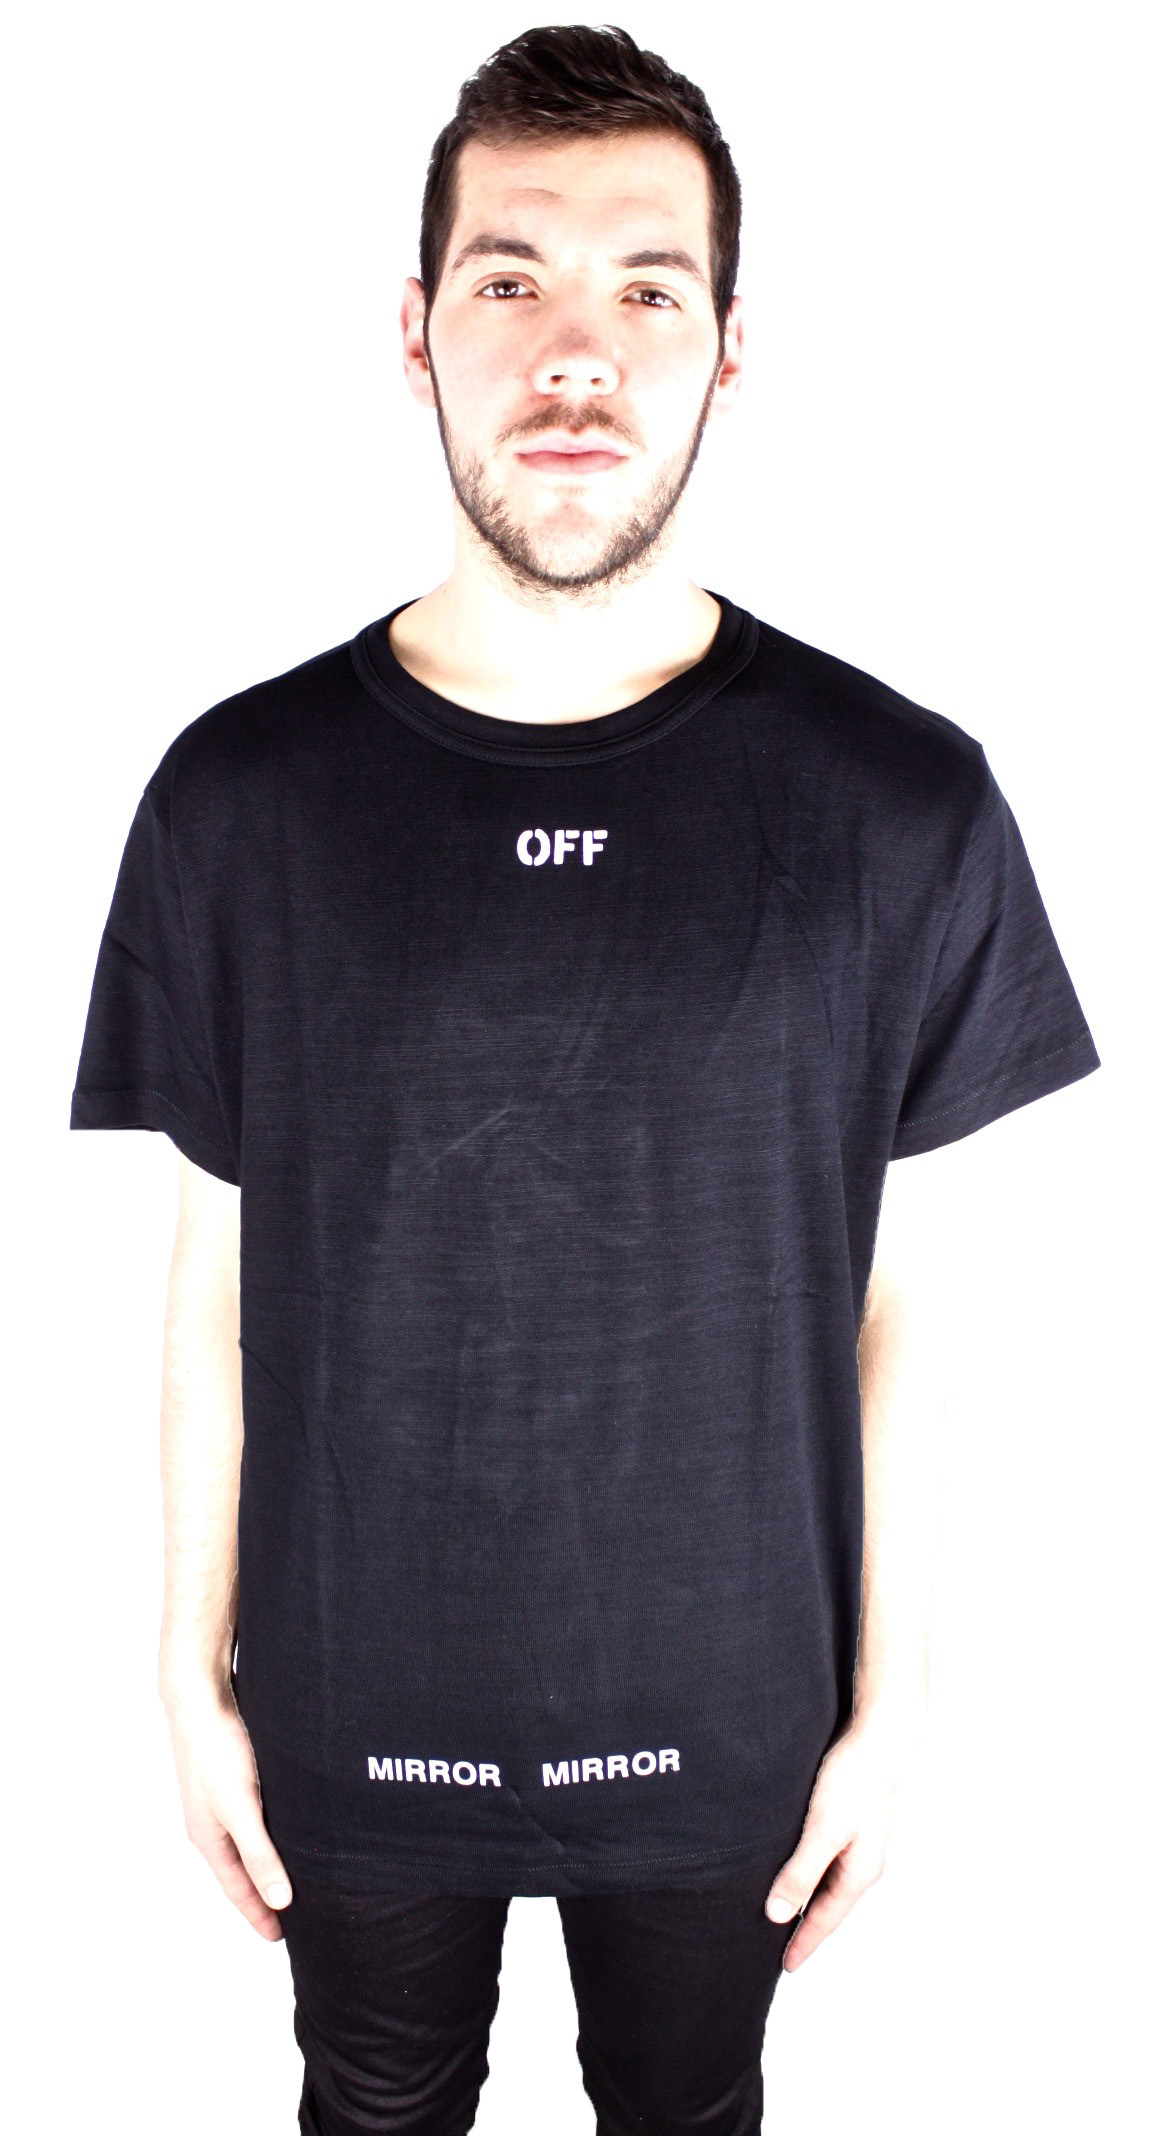 50a6b63bb Off-White Care Off Print Tee OMAA002 S17001128 1001 T-Shirt ...